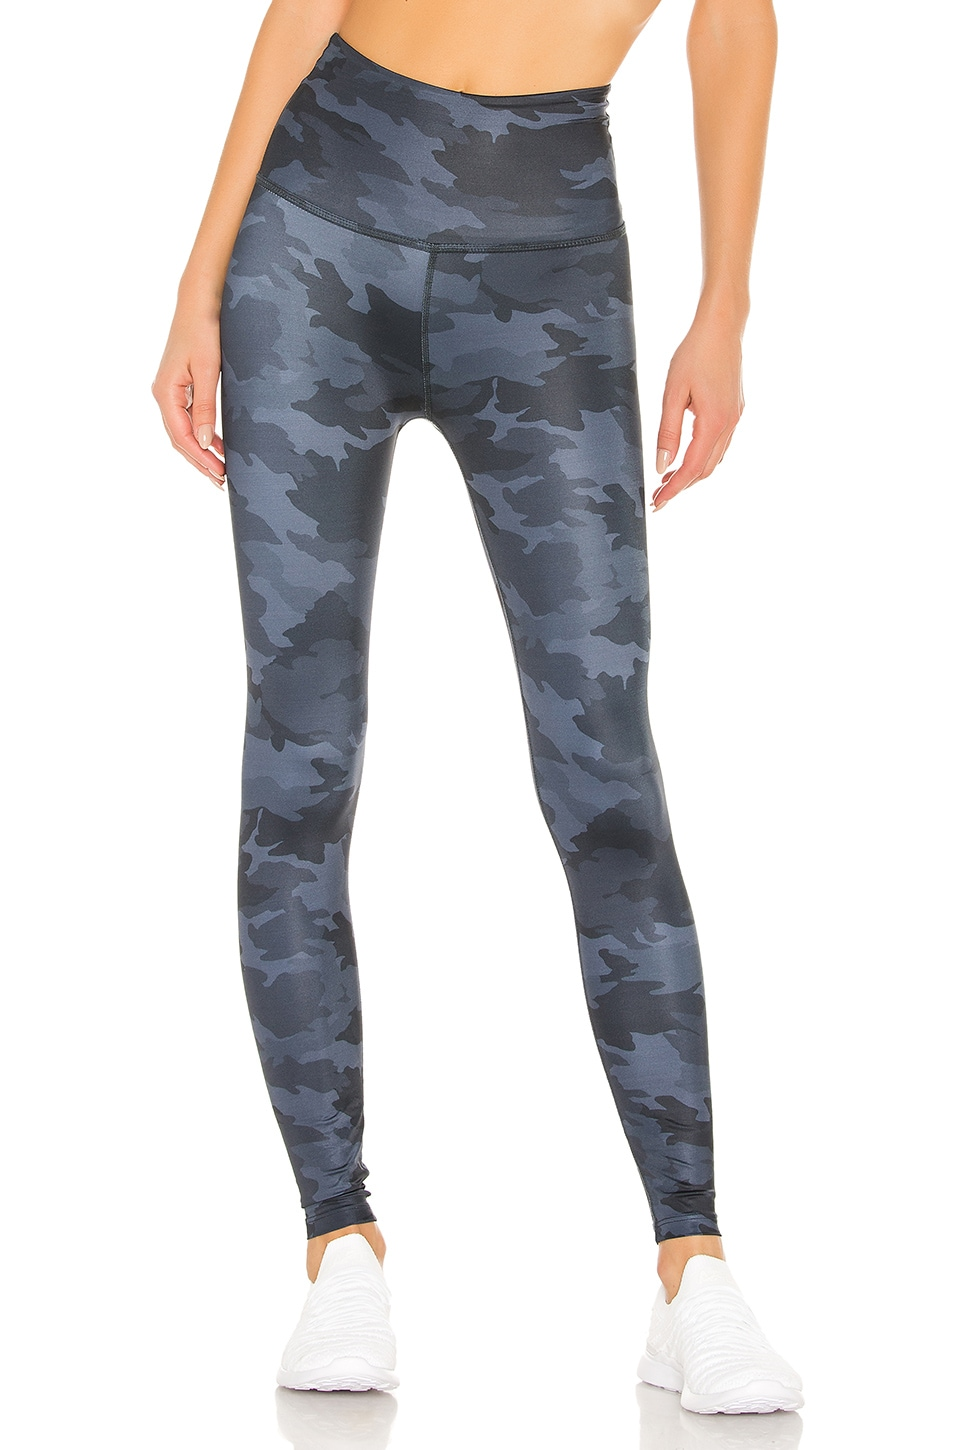 Beyond Yoga Lux High Waisted Midi Legging in Navy Camo